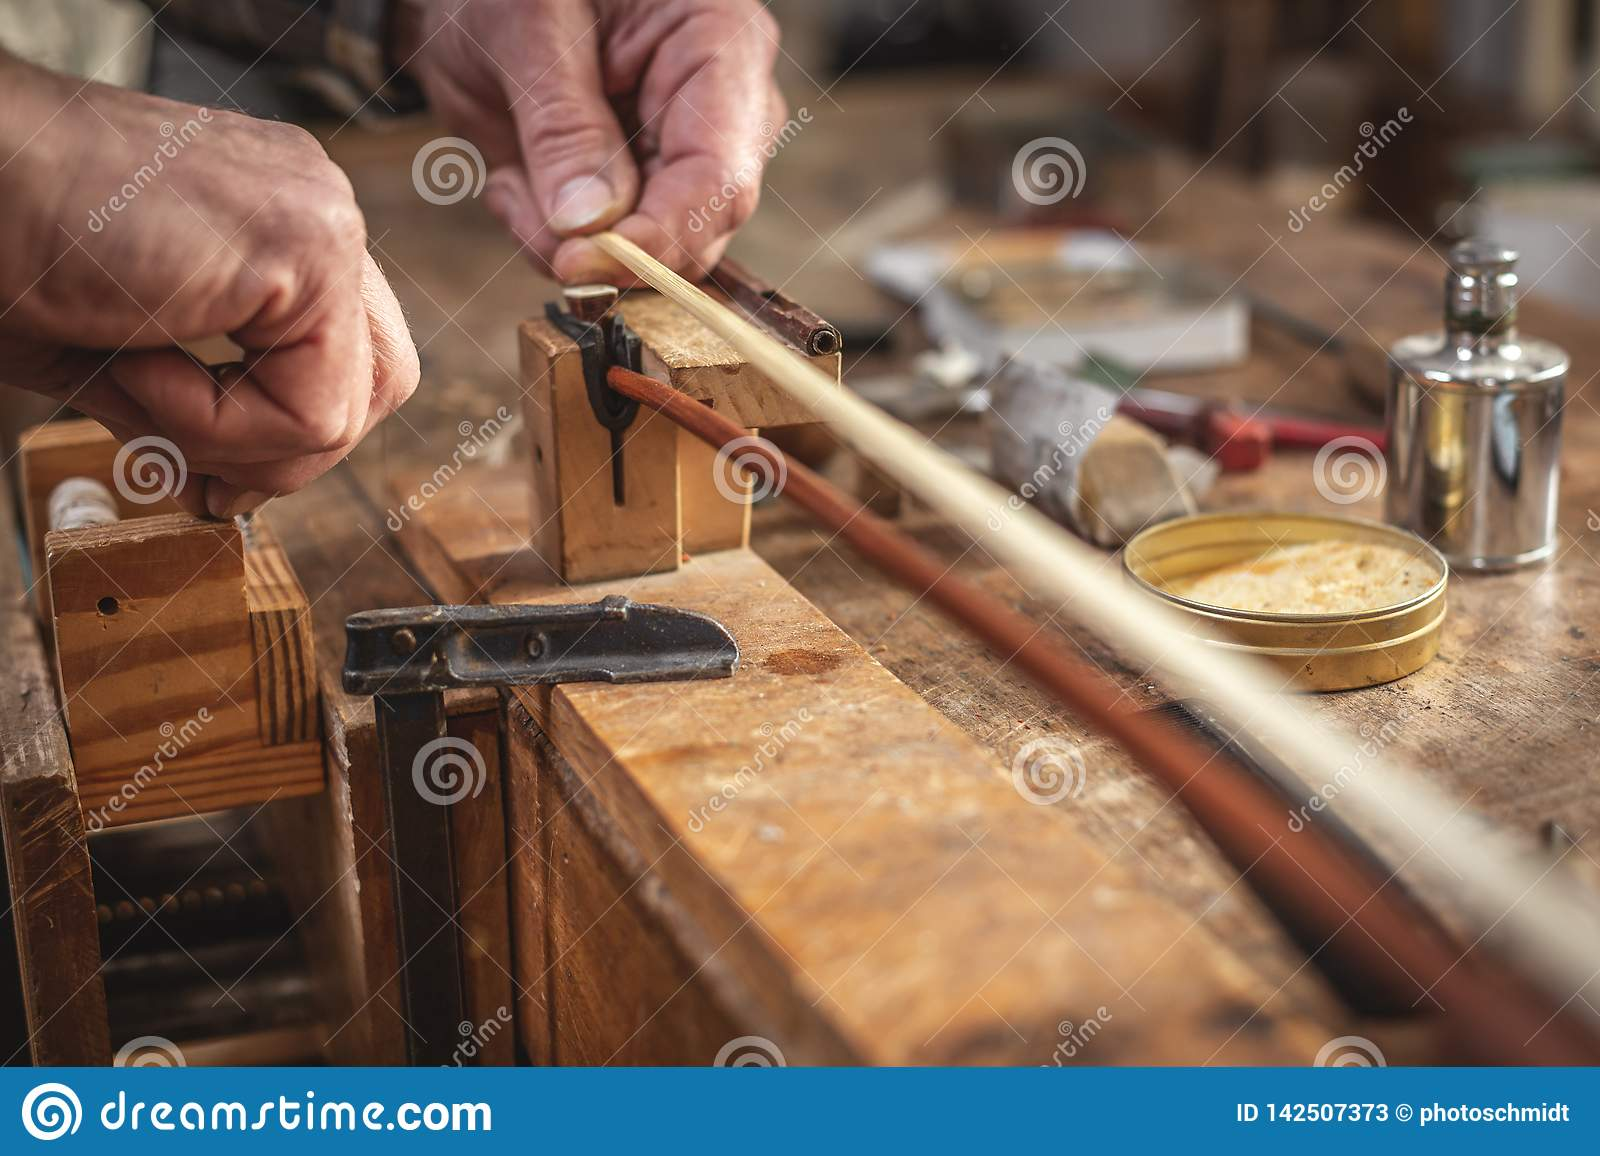 Violin maker working on a violin bow